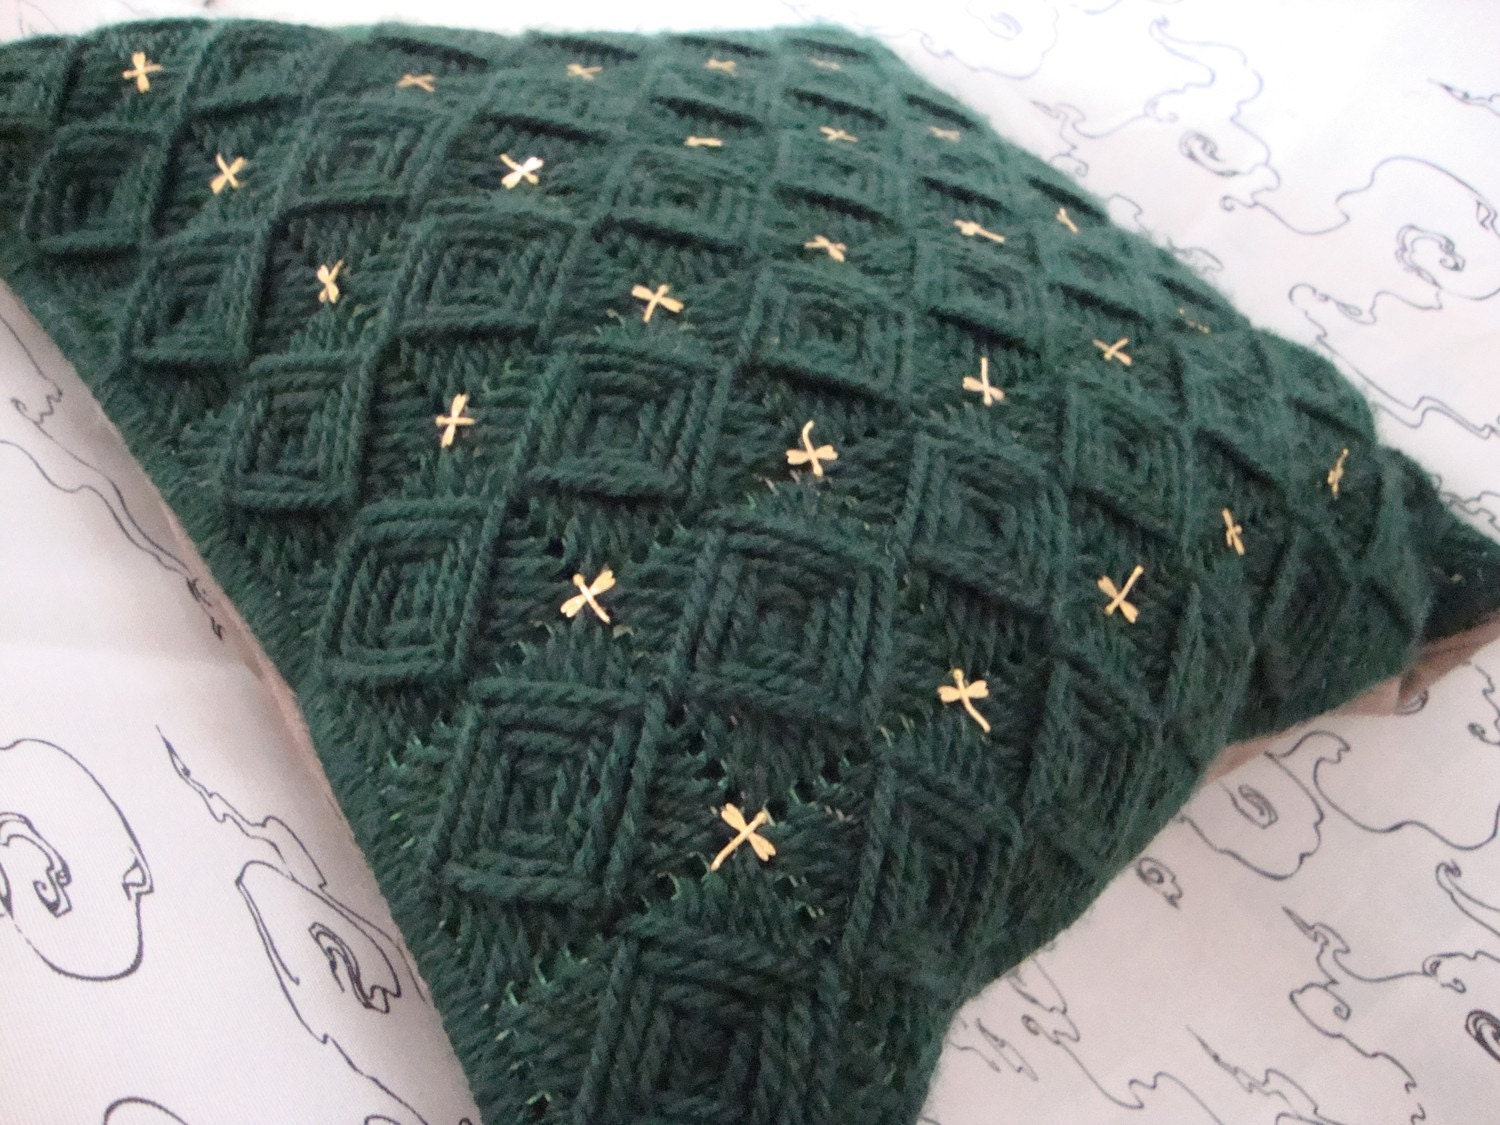 Needlepoint Handmade Pillow Cover with Lucky 22 Karat Gold Plated Dragonflies on Dark Green Squares / Shop Early for Christmas